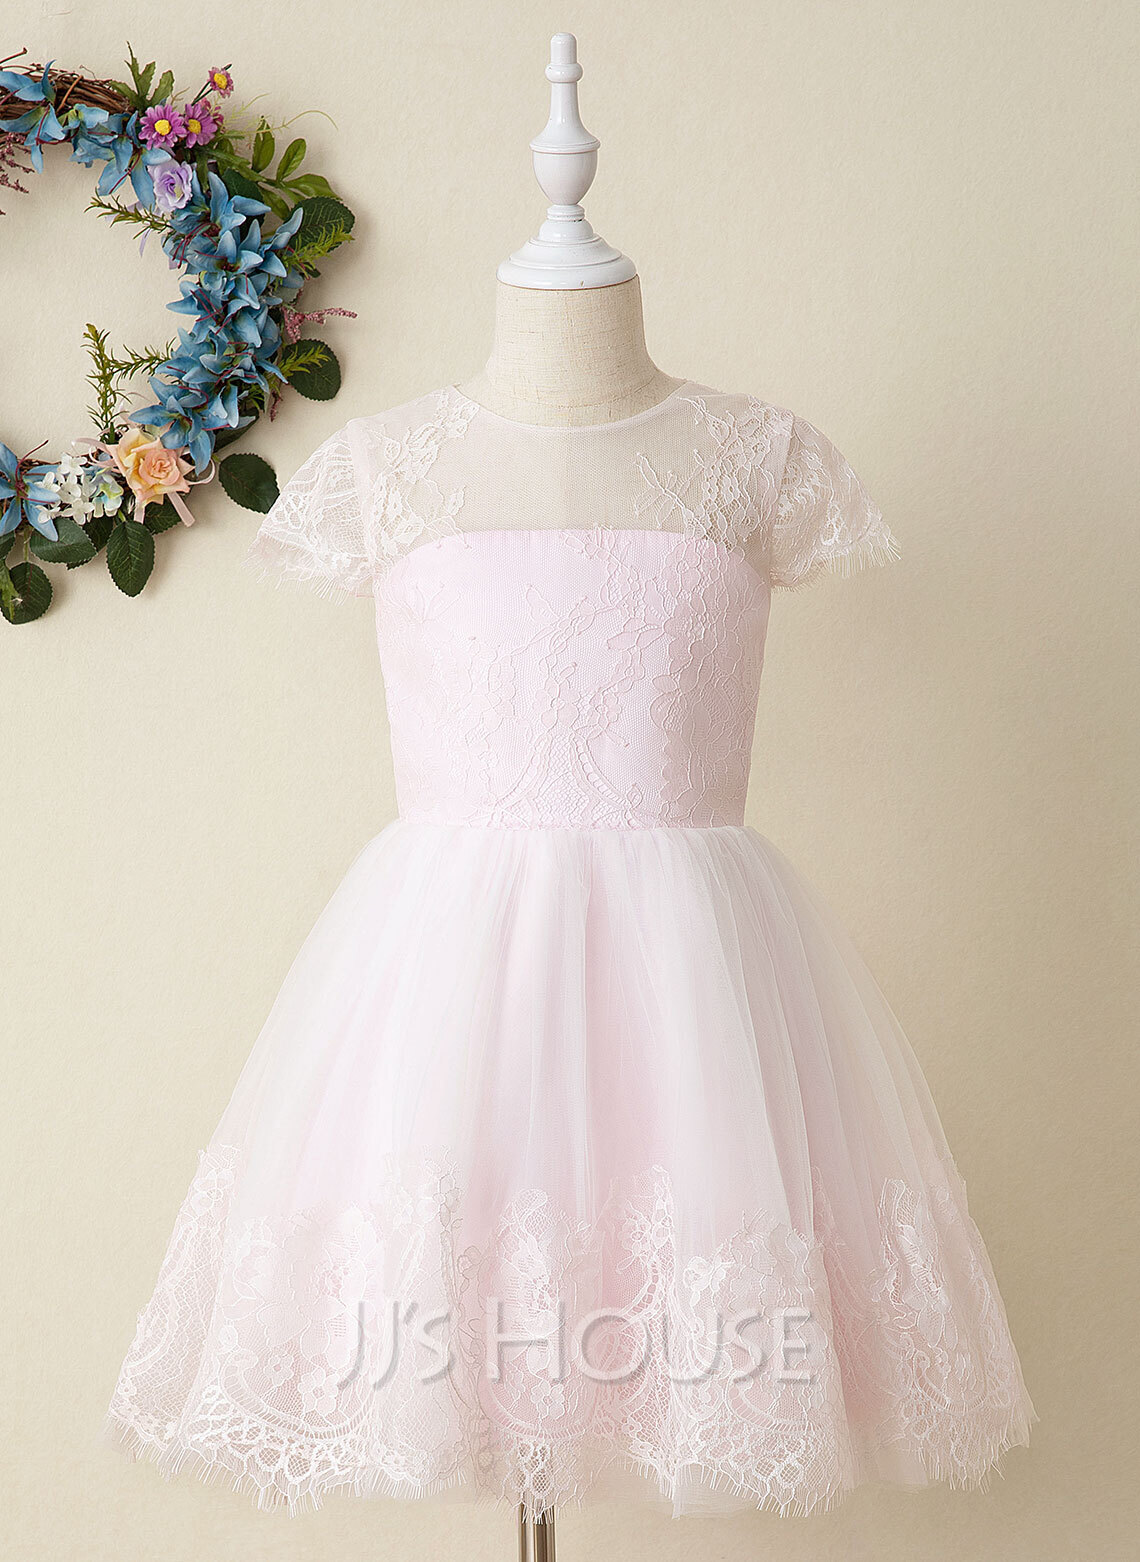 A-Line Knee-length Flower Girl Dress - Tulle/Lace Short Sleeves Scoop Neck With Lace